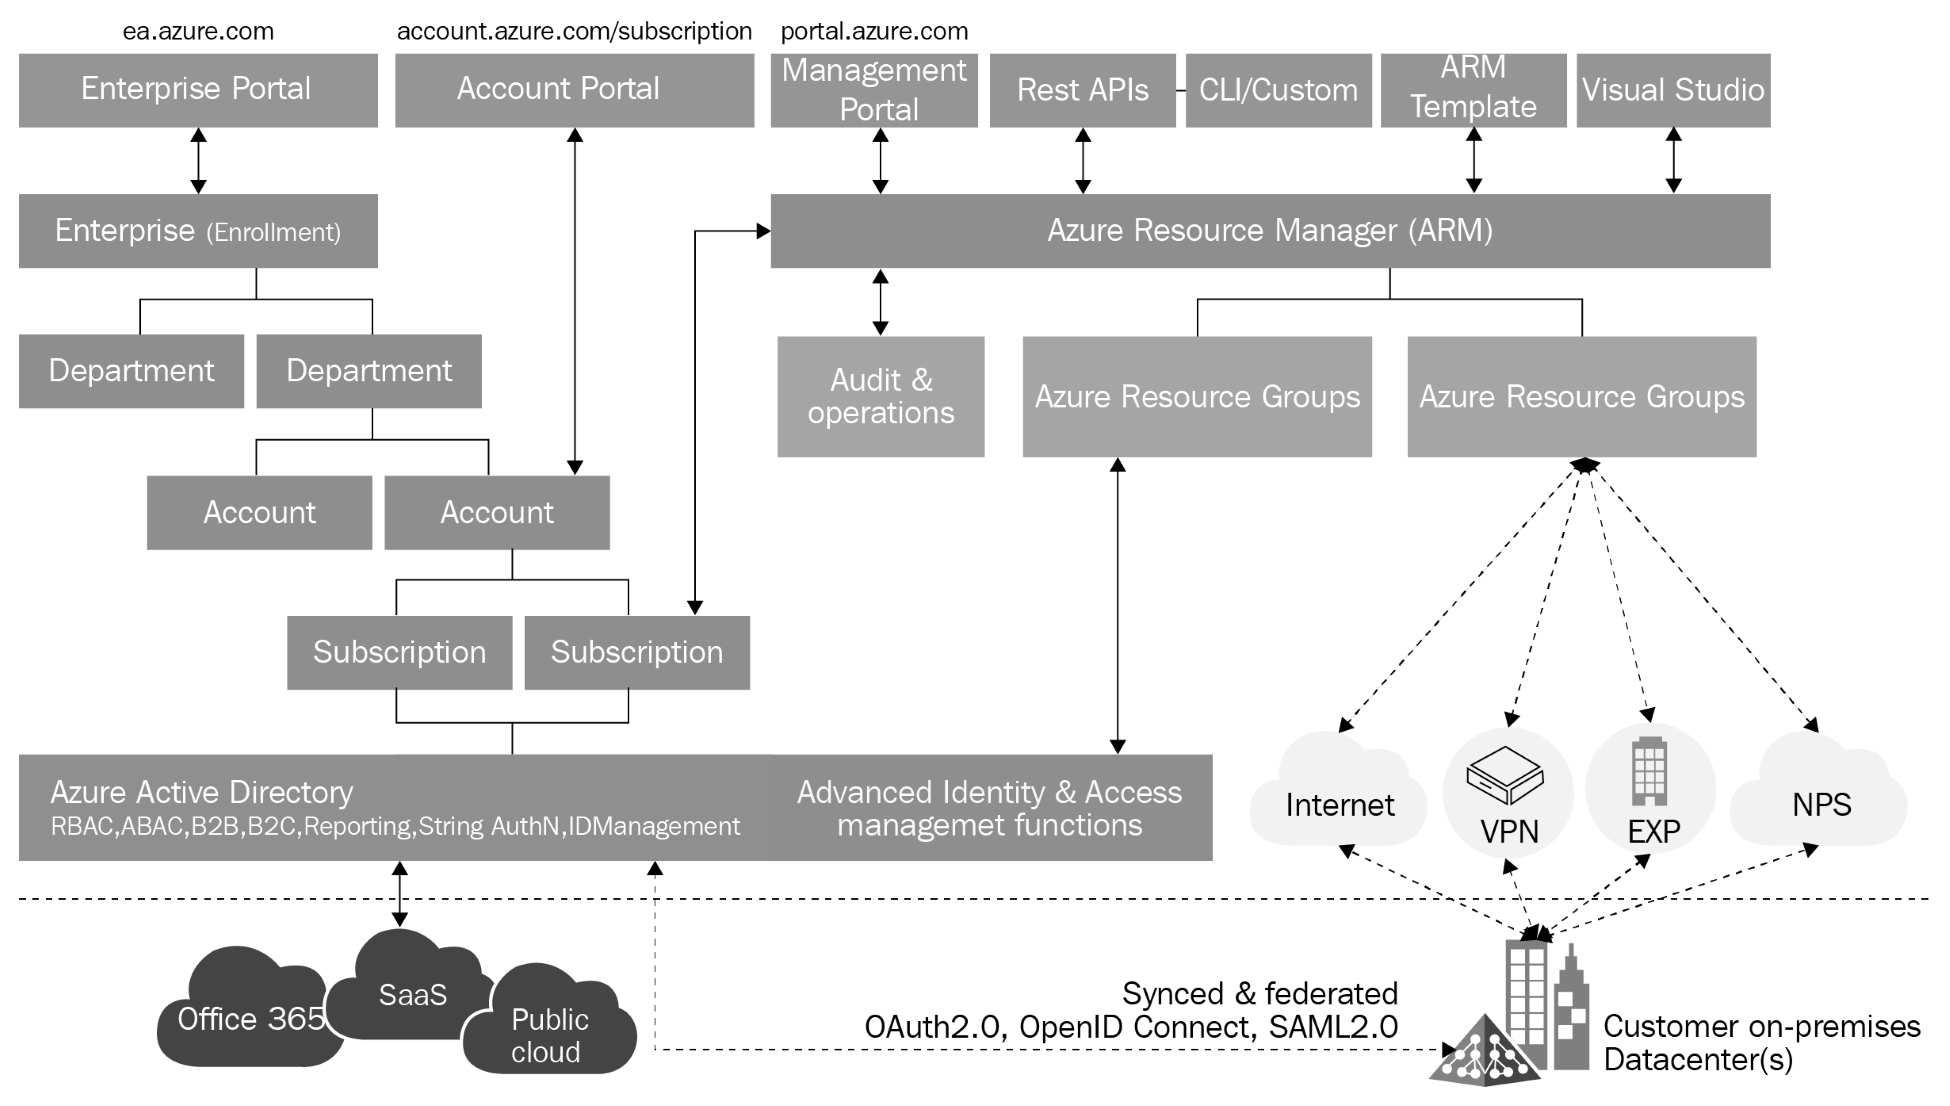 Designing a Multi-Cloud Environment with IaaS, PaaS, and